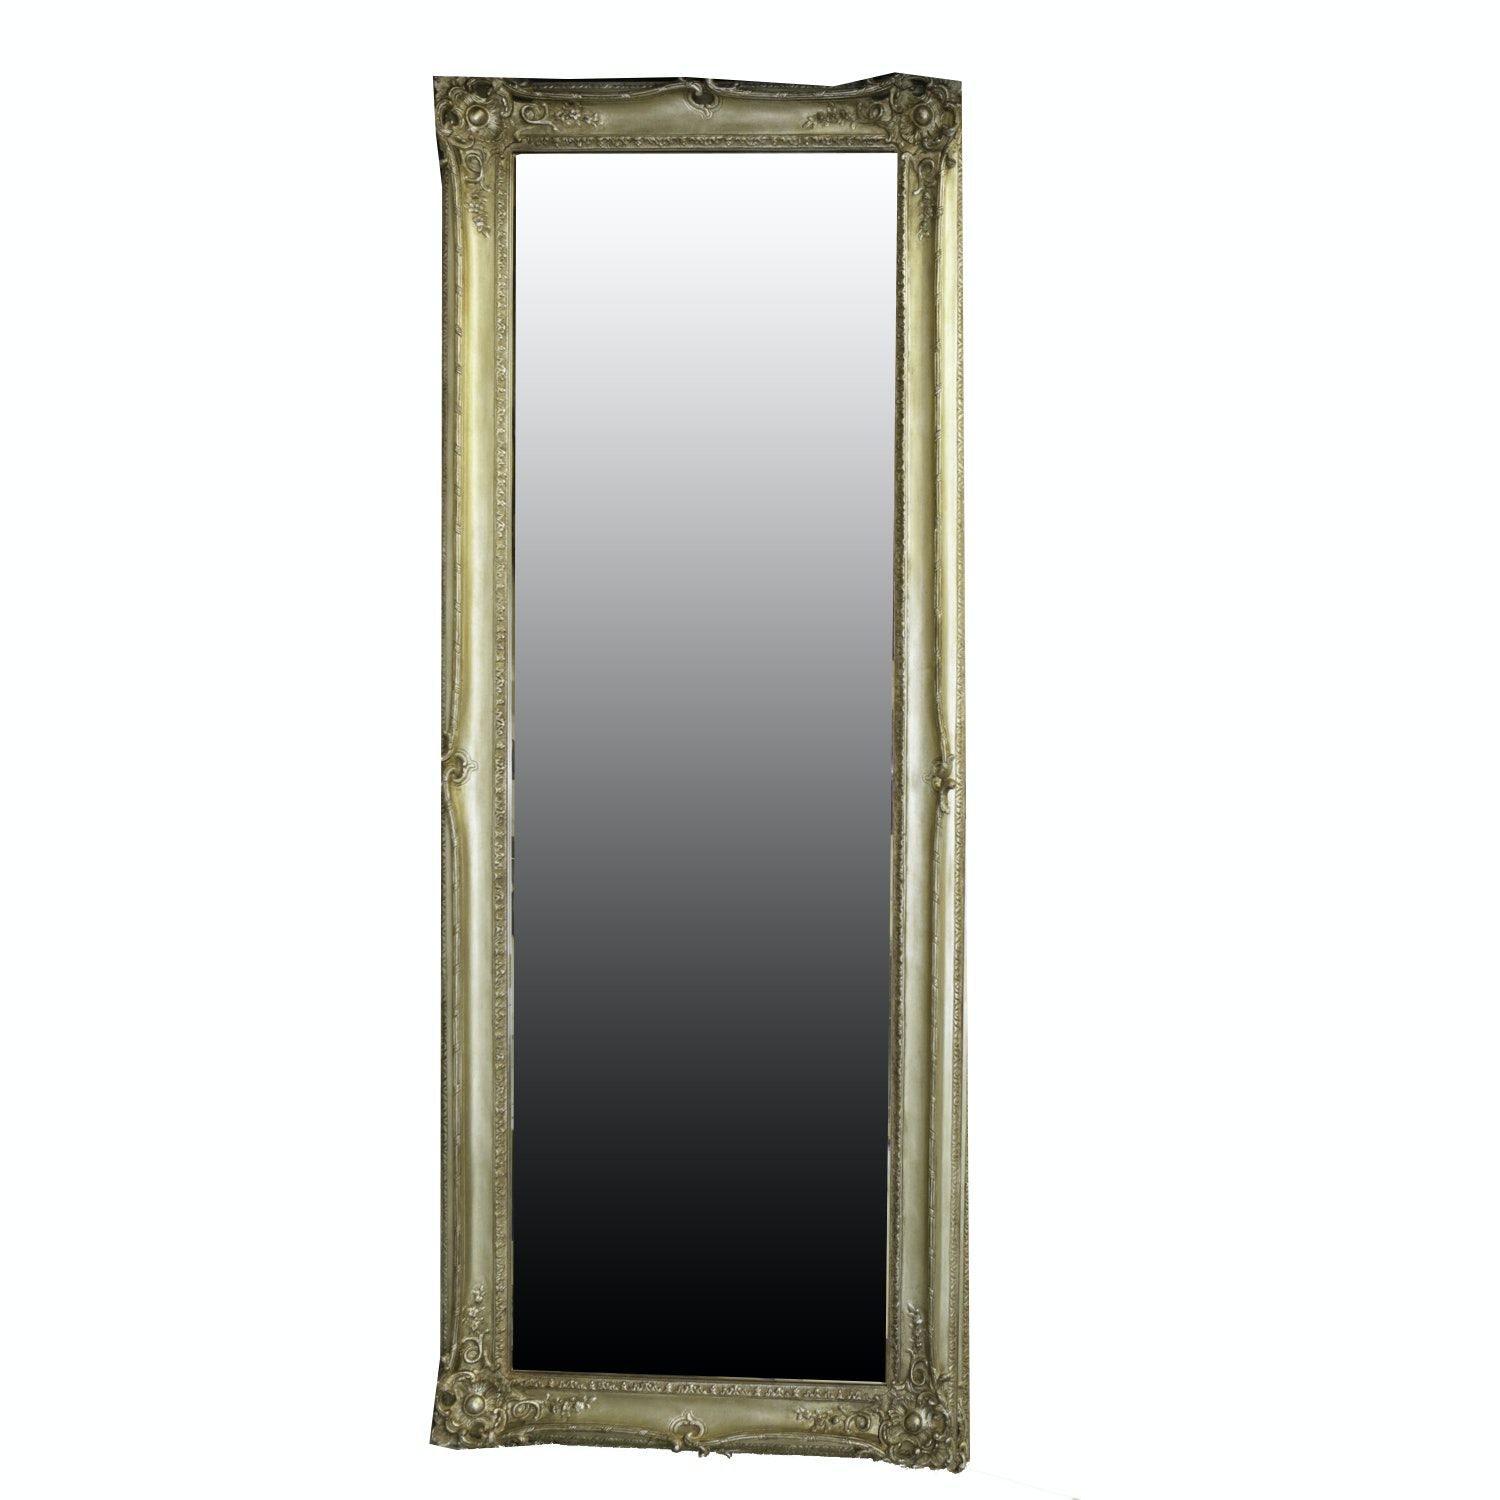 Baroque-Style Wood Framed Wall Mirror